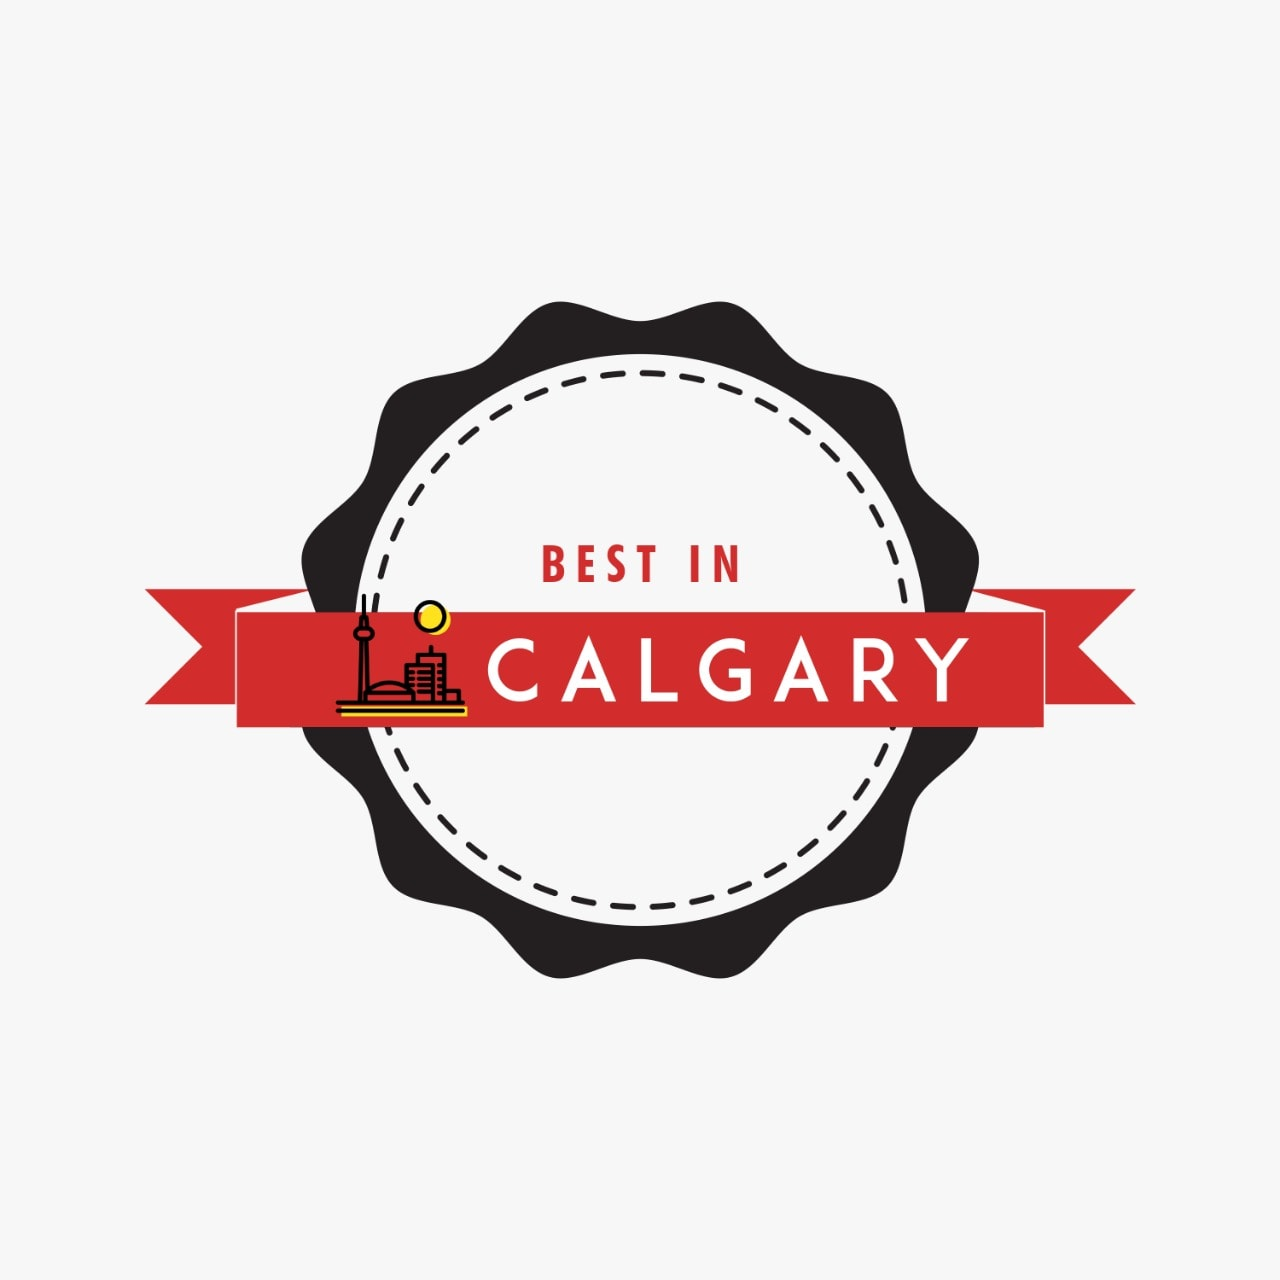 Calgary's best dietitian nutritionists - we made top 5 nutritionist dietitians on the 'Best in Calgary' list